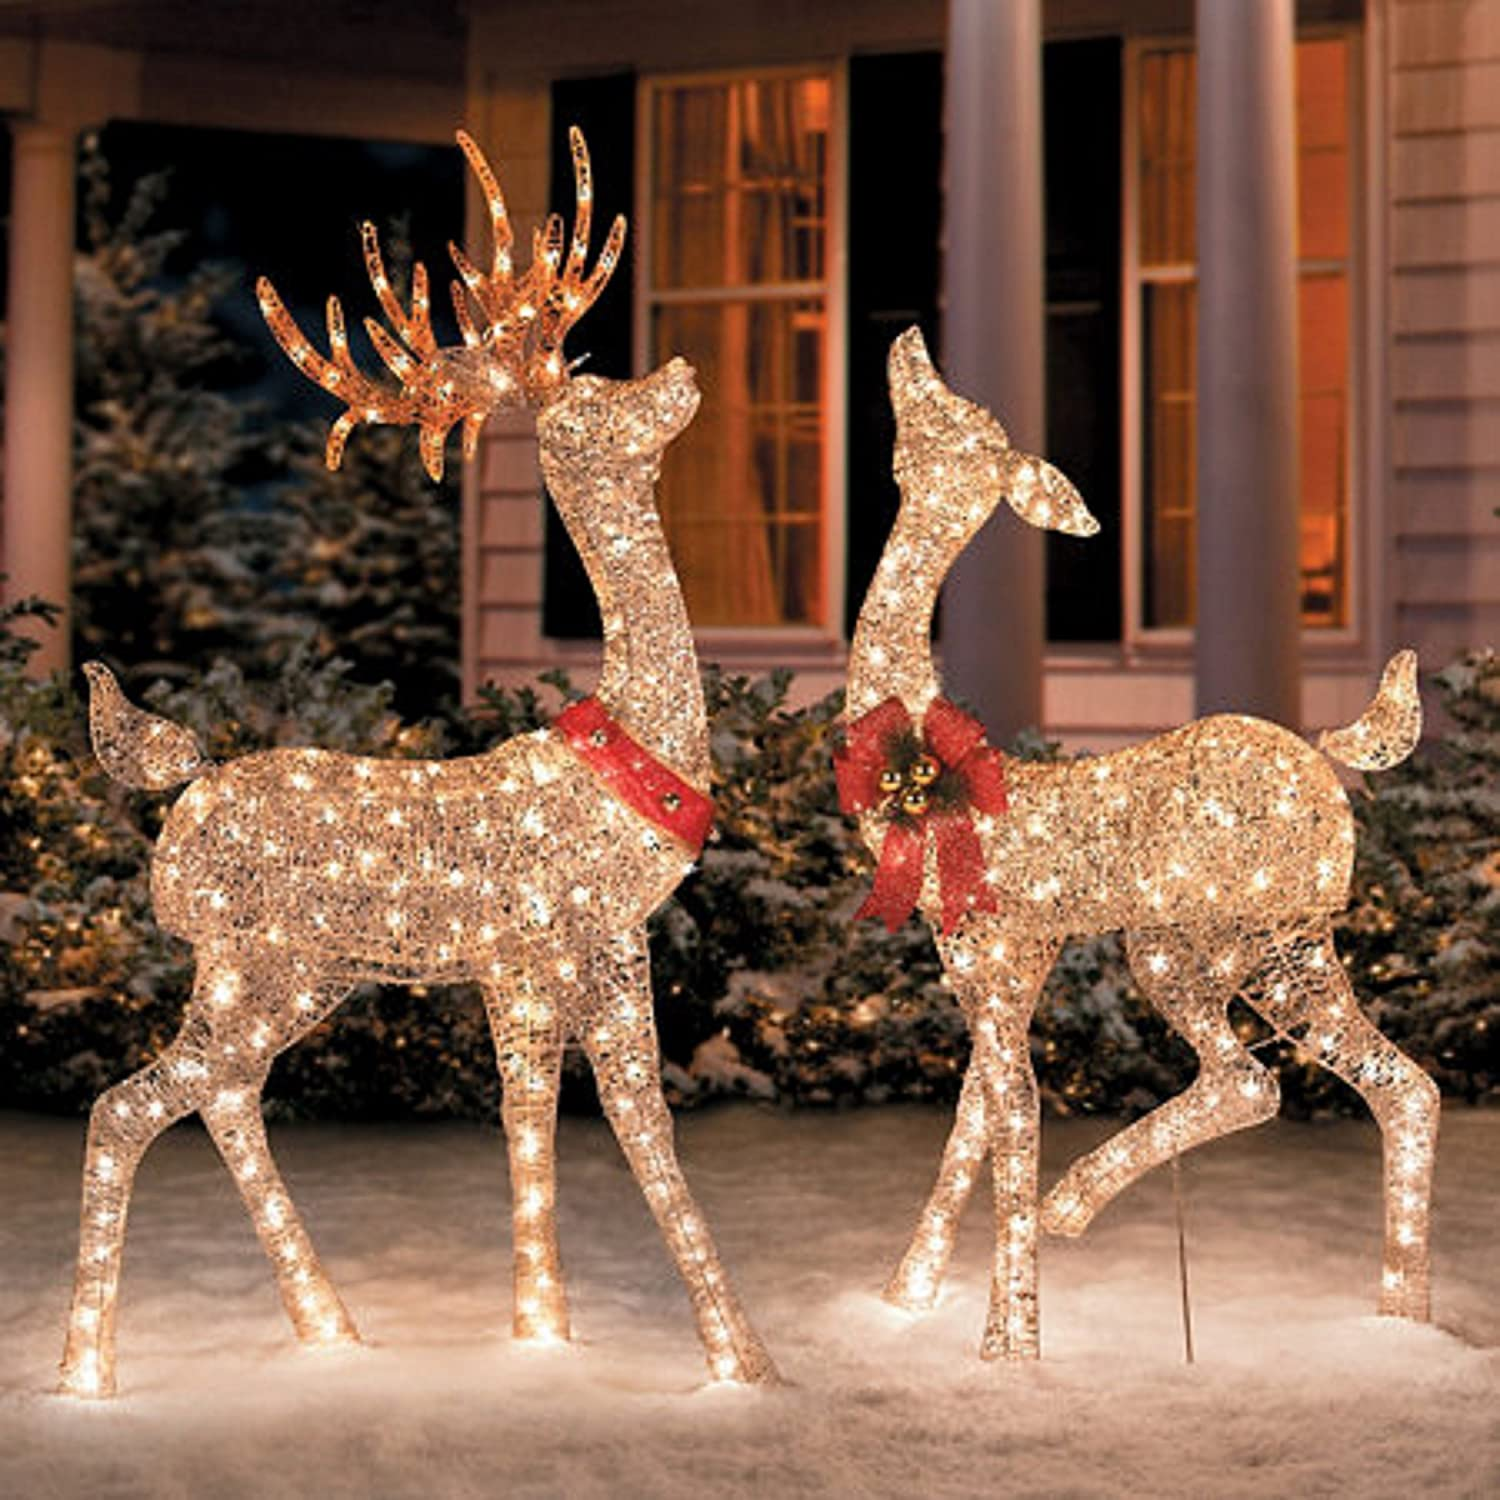 Amazon.com: Glittering Champagne Reindeer Holiday Christmas Outdoor  Decorations: Home & Kitchen - Amazon.com: Glittering Champagne Reindeer Holiday Christmas